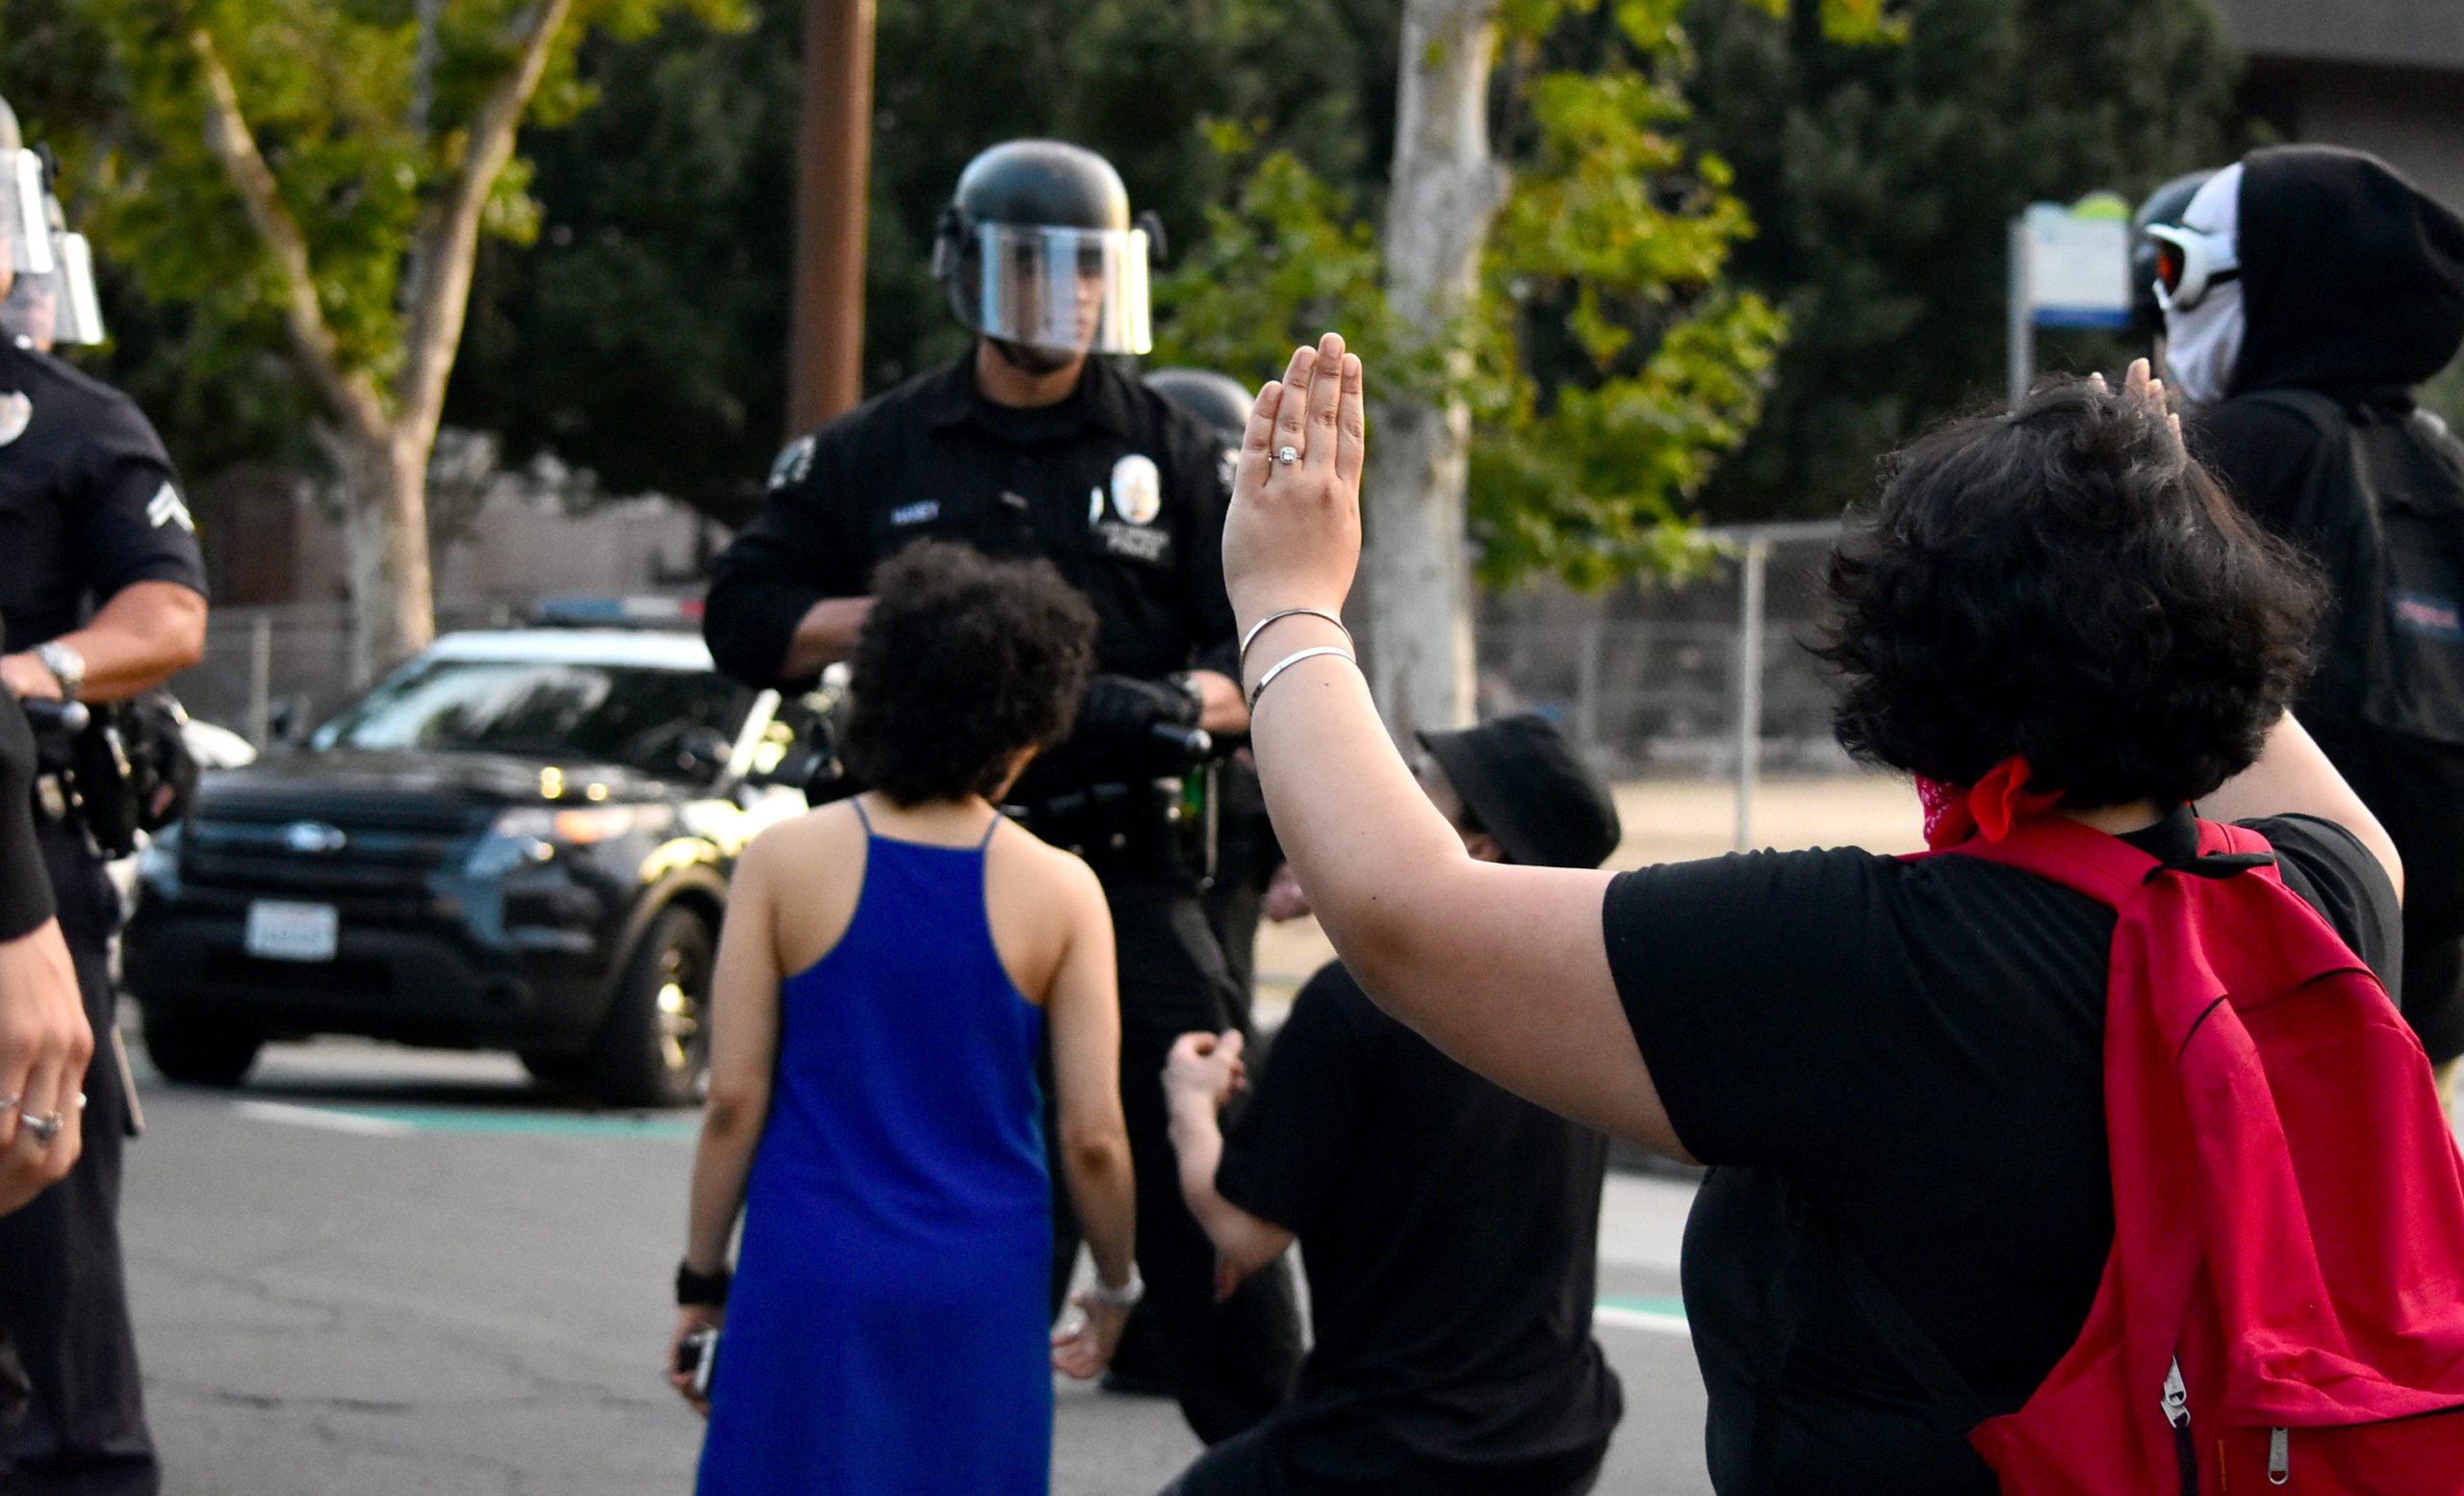 south-pasadena-news-05-31-2020-george-floyd-blm-black-lives-matter-protests-los-angeles-day-2-21